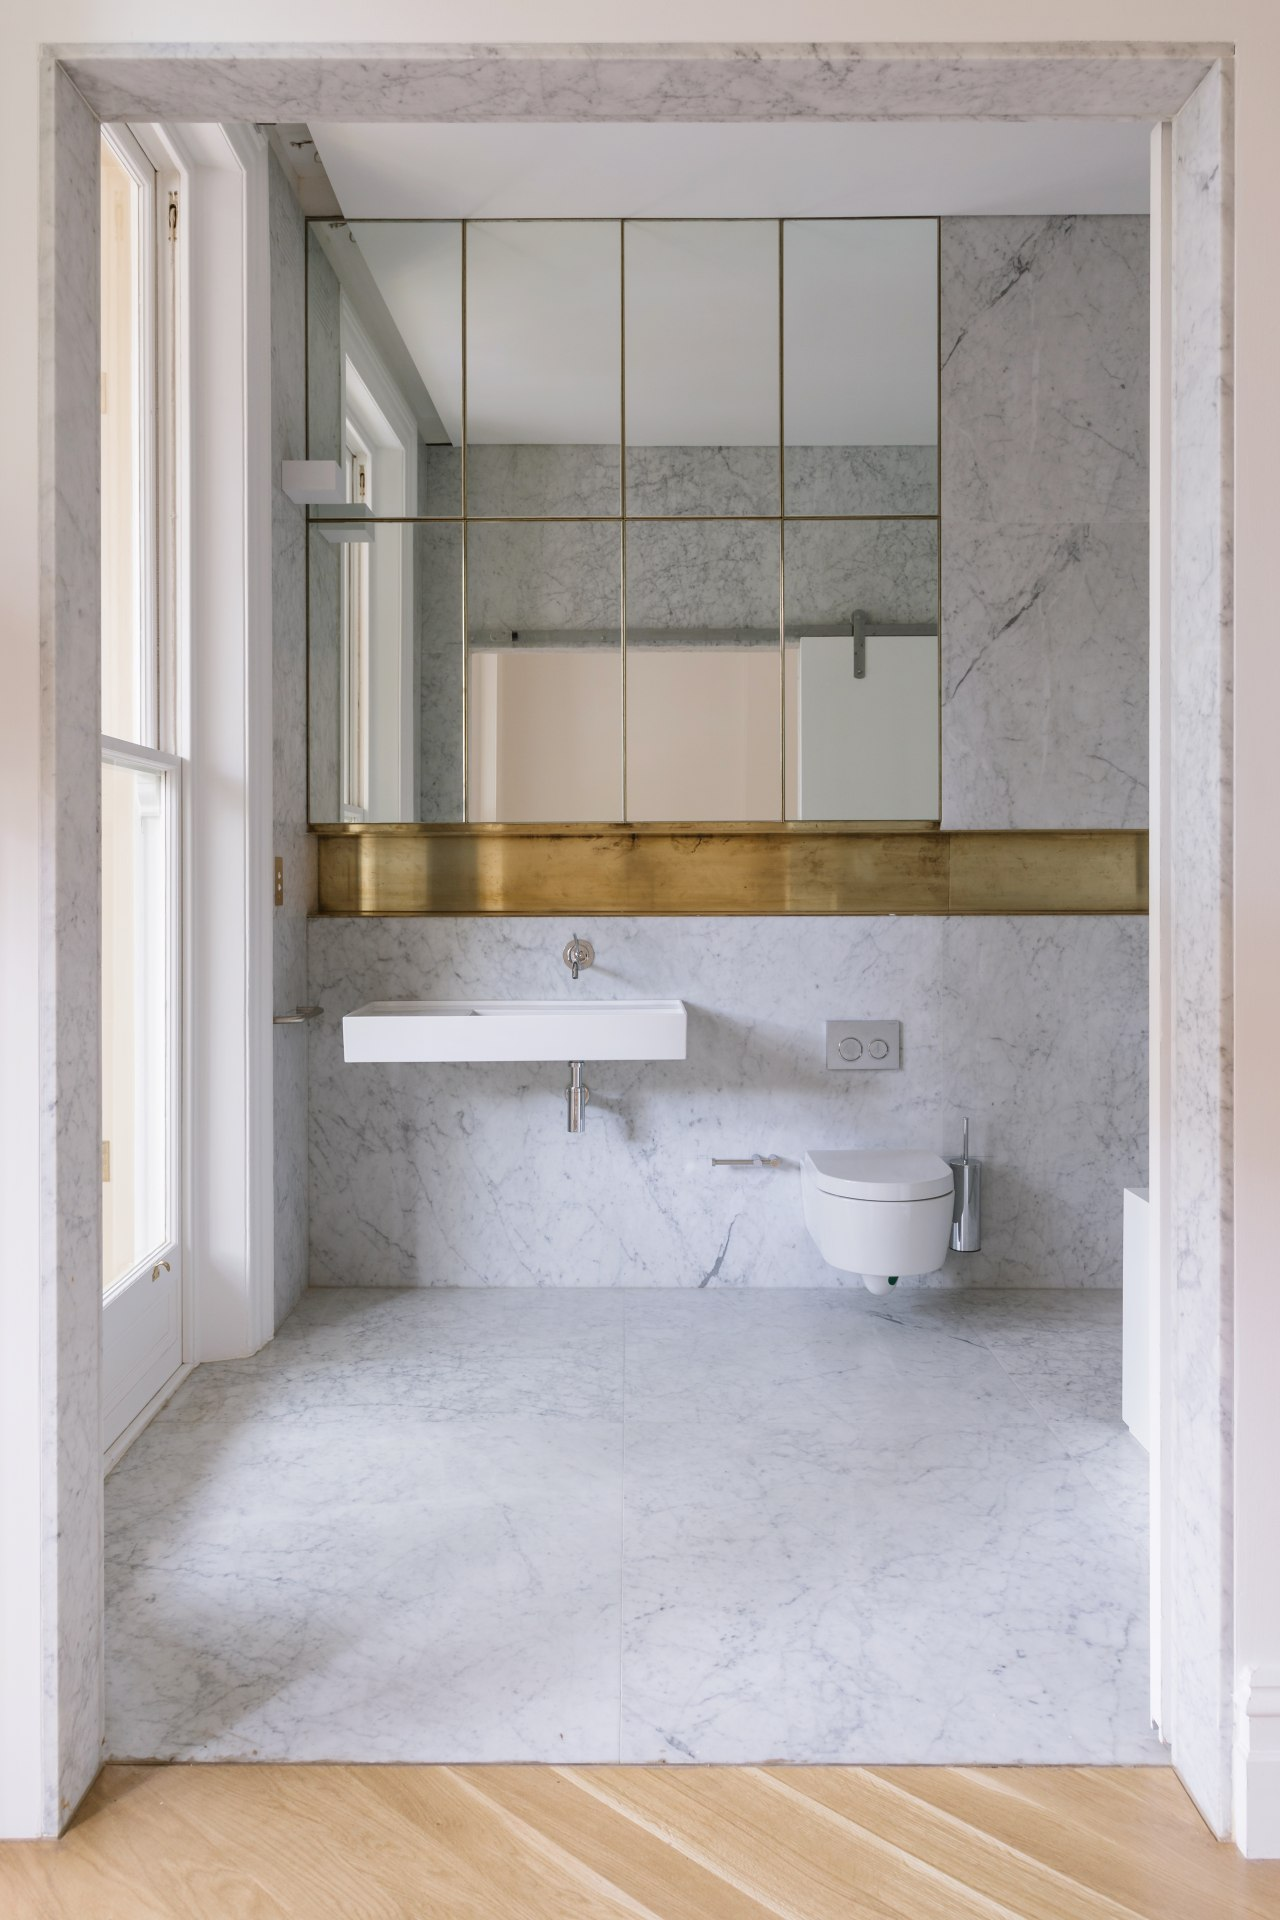 In this bathroom, a classic room-high sash window architecture, bathroom, bathroom accessory, bathroom cabinet, floor, interior design, sink, gray